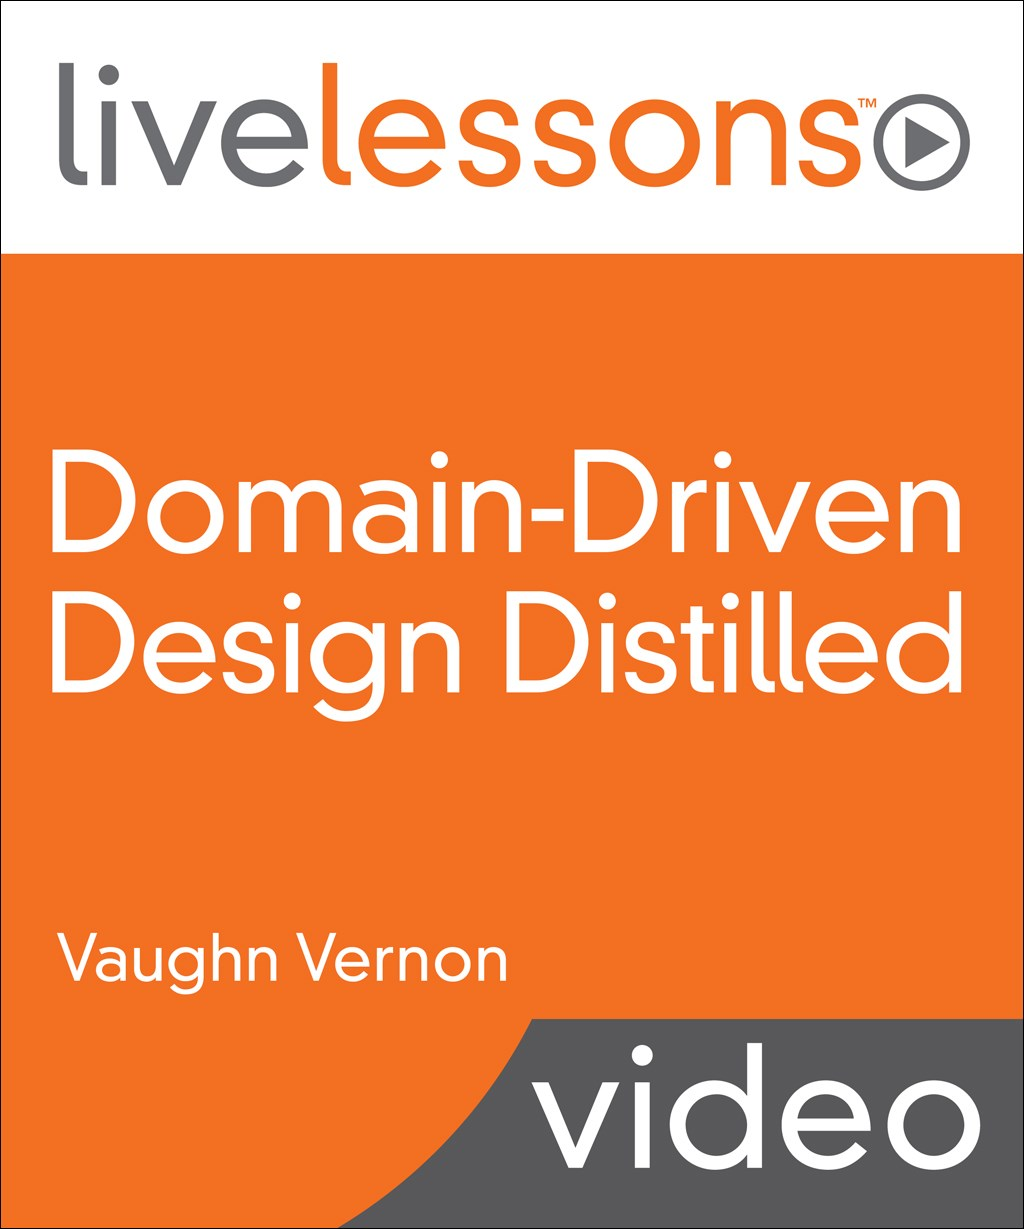 Domain-Driven Design Distilled LiveLessons